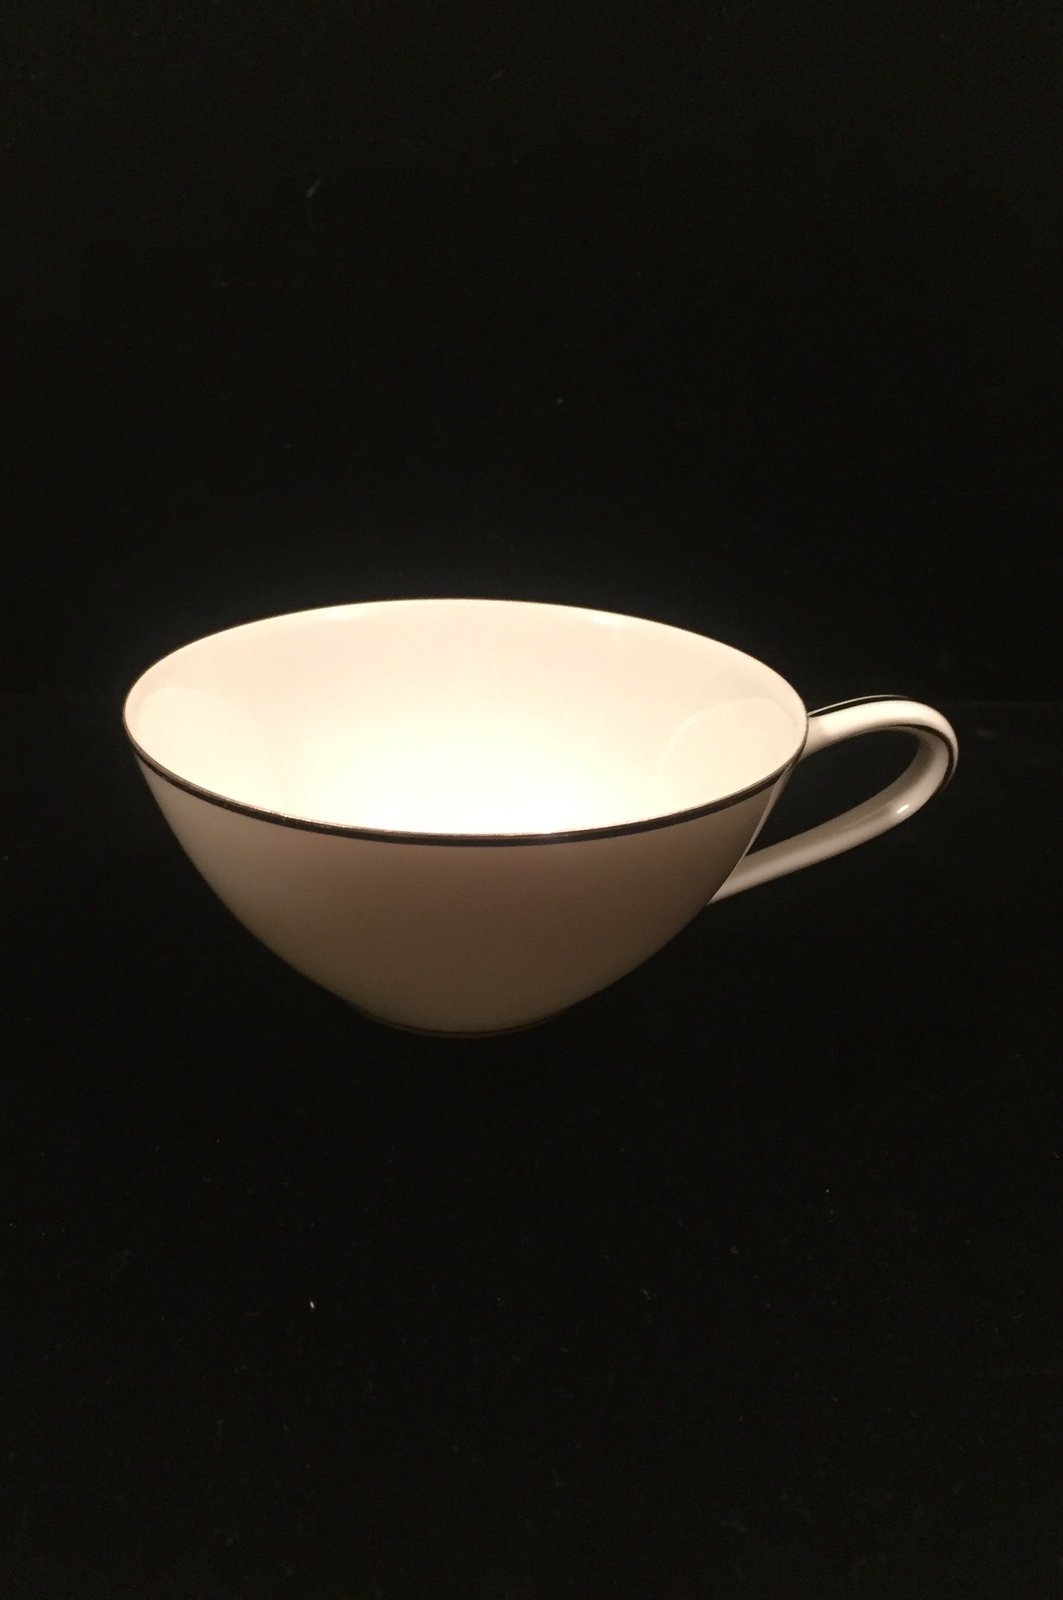 Noritake Colony pattern 5932 tea cup - Vintage 50s flat cup with platinum trim